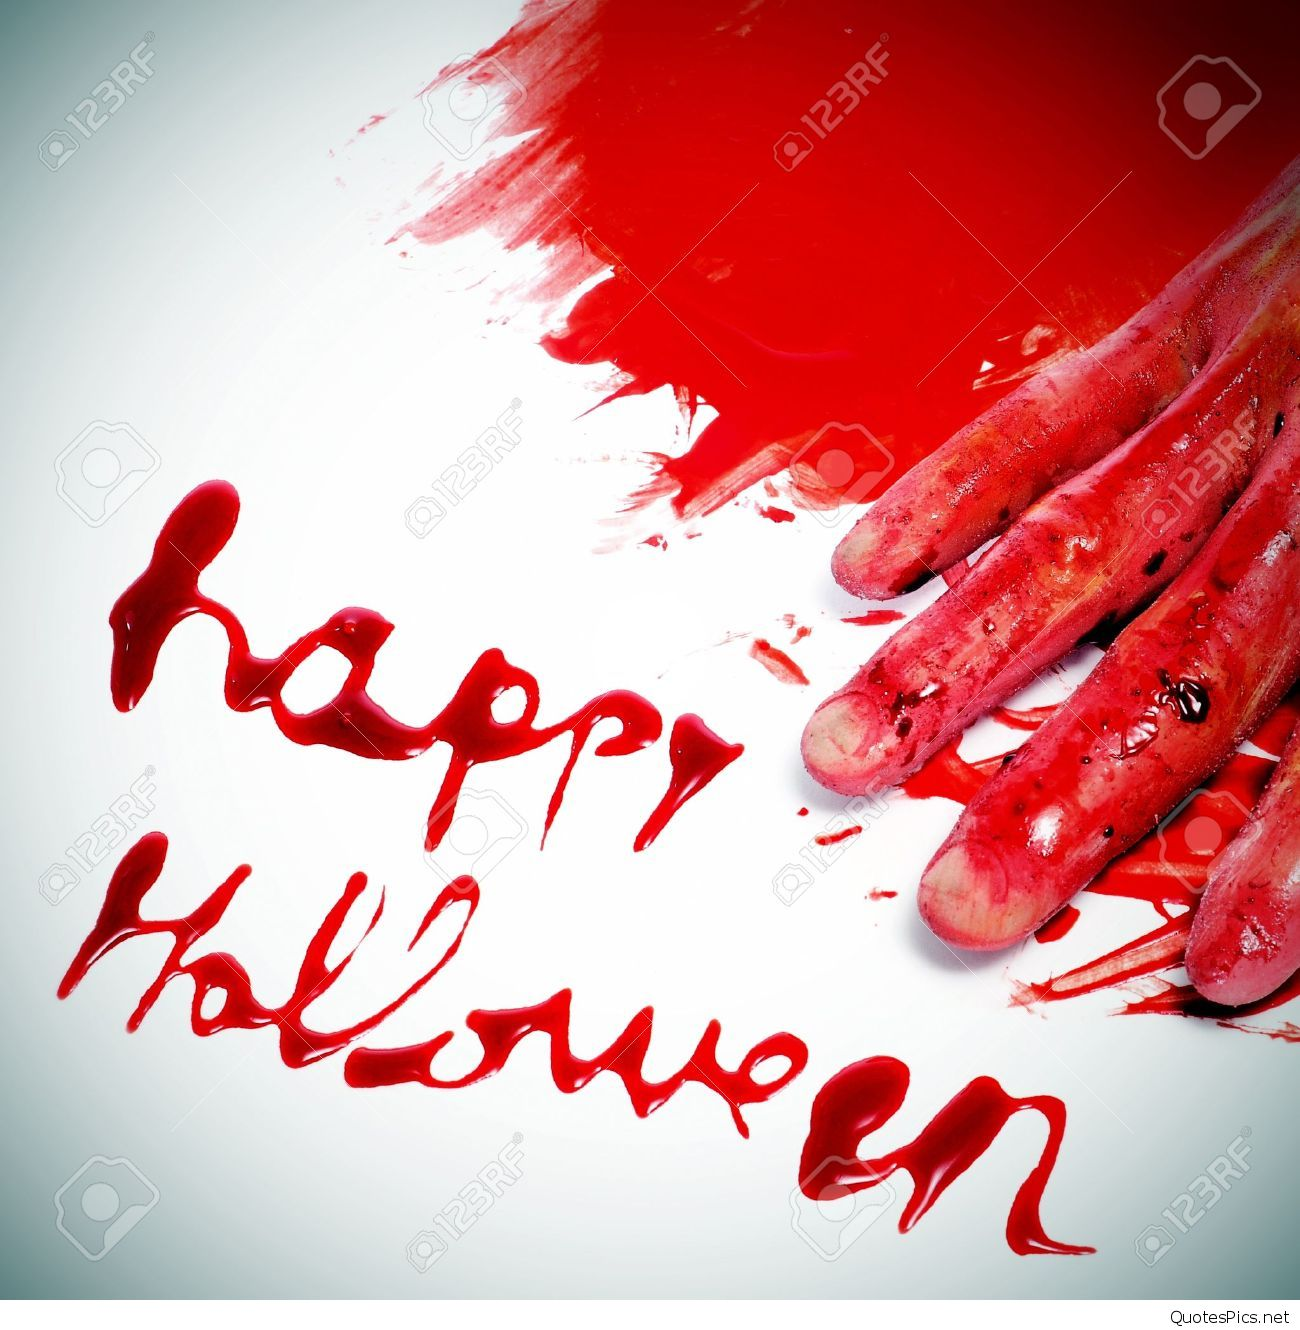 Happy-Halloween-written-with-blood-and-a-scary-and-bloody-hand-in-a-pool-of-blood-Stock-Photo